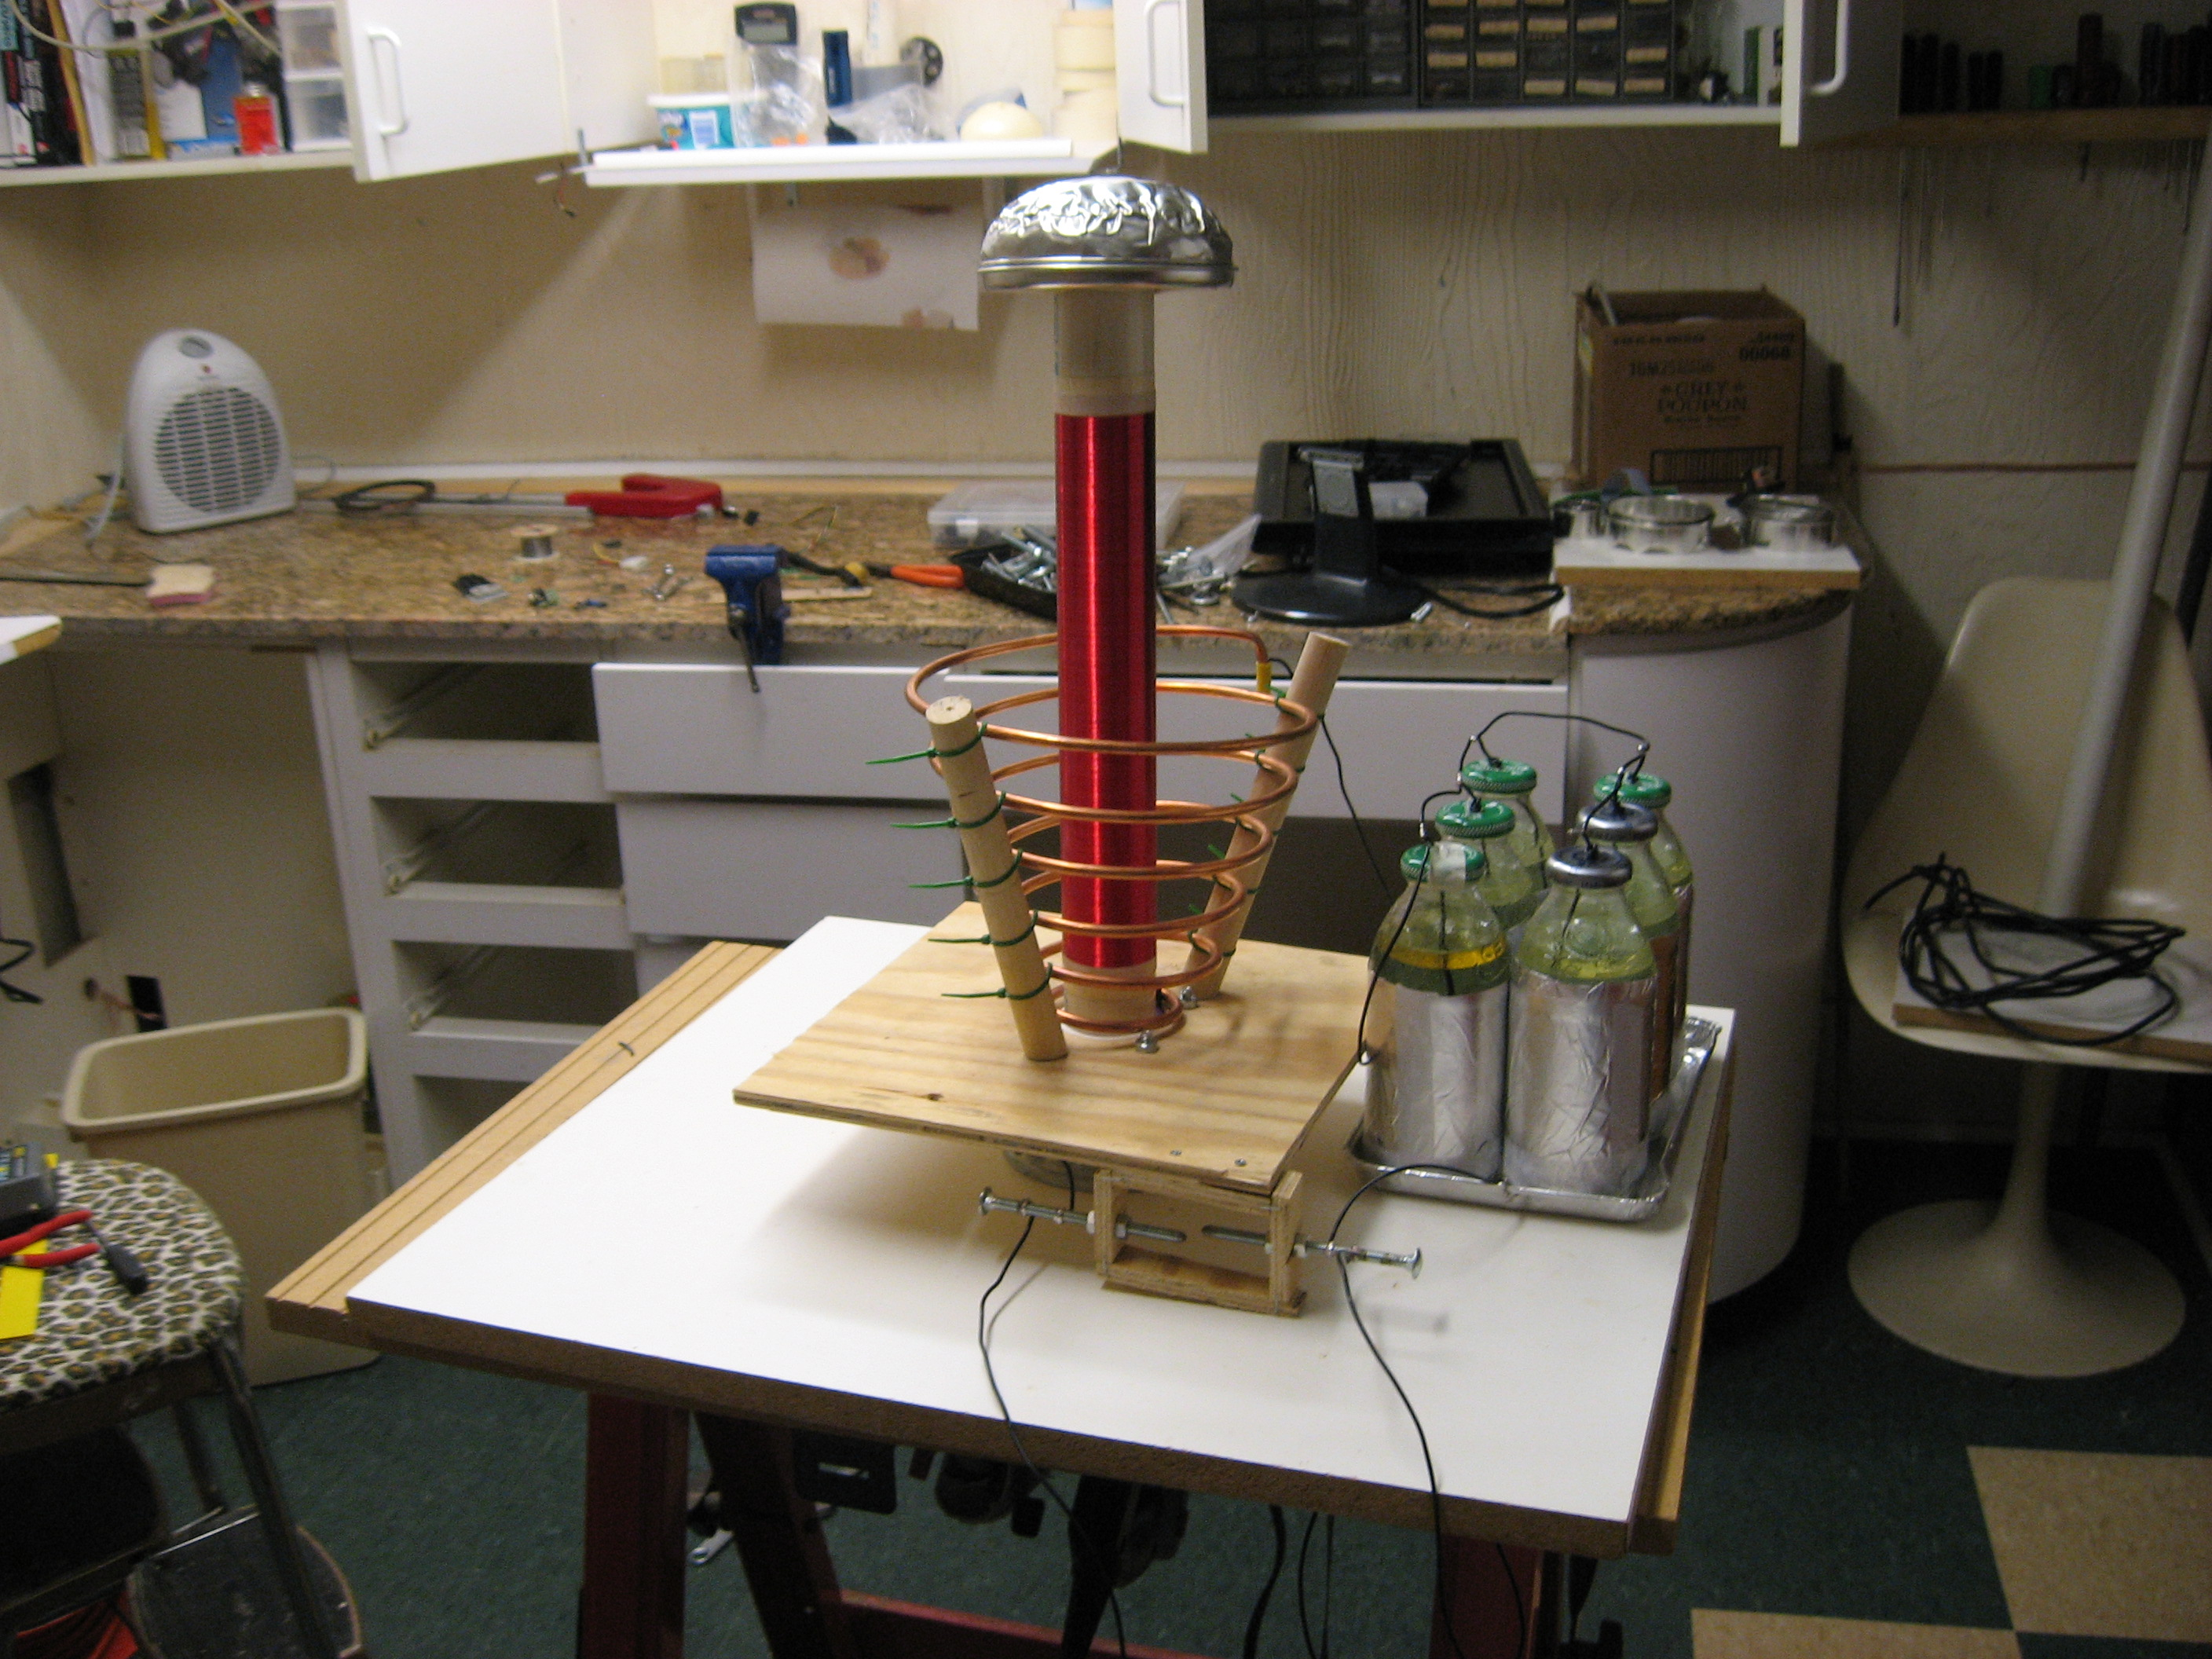 How to build a Tesla Coil